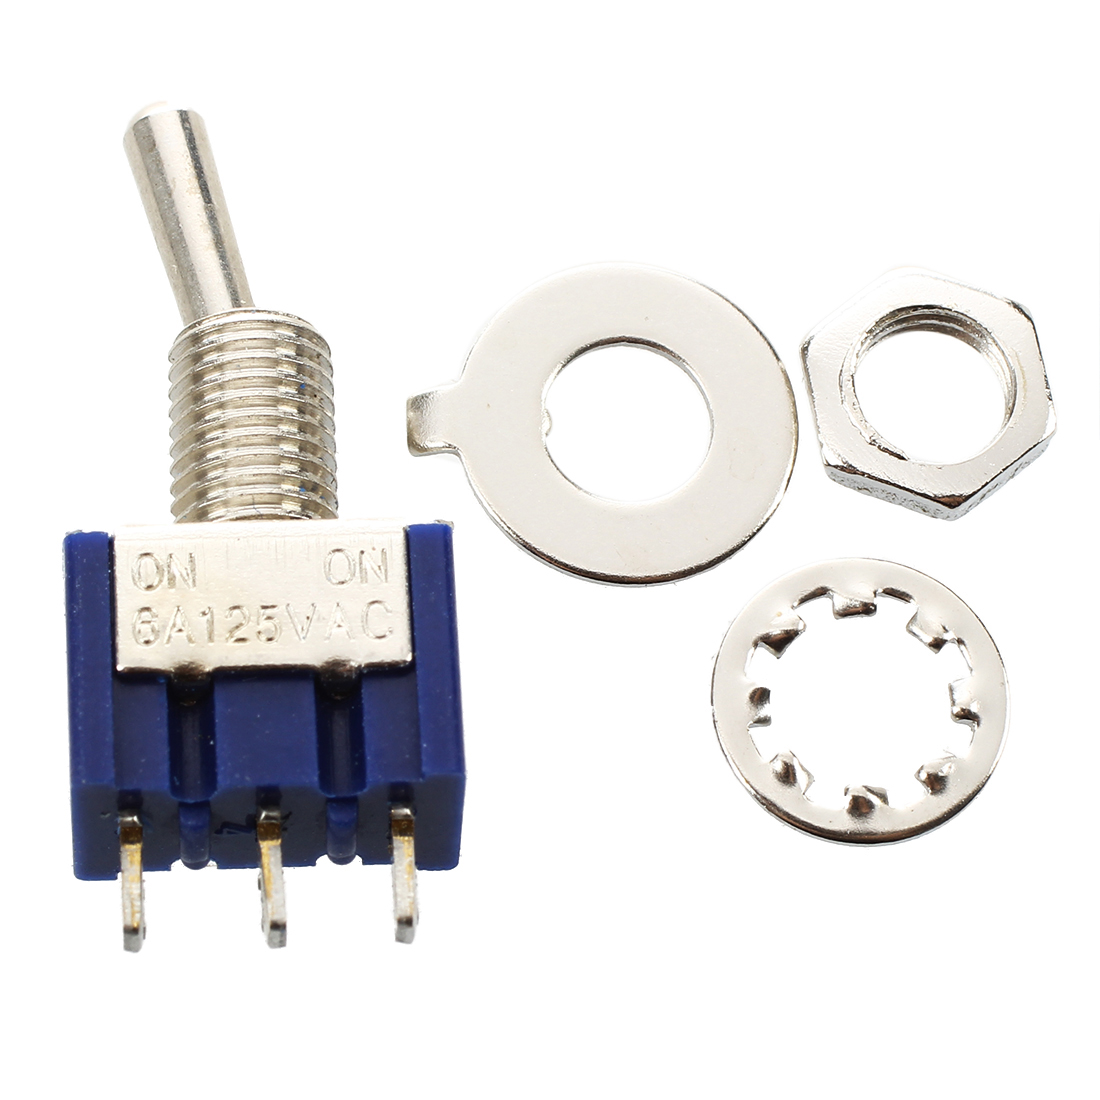 25x On-off Toggle Switch Spst Mts-101 6mm 1/4 Sub Miniature on Off B12 рулетка bahco mts 8 25